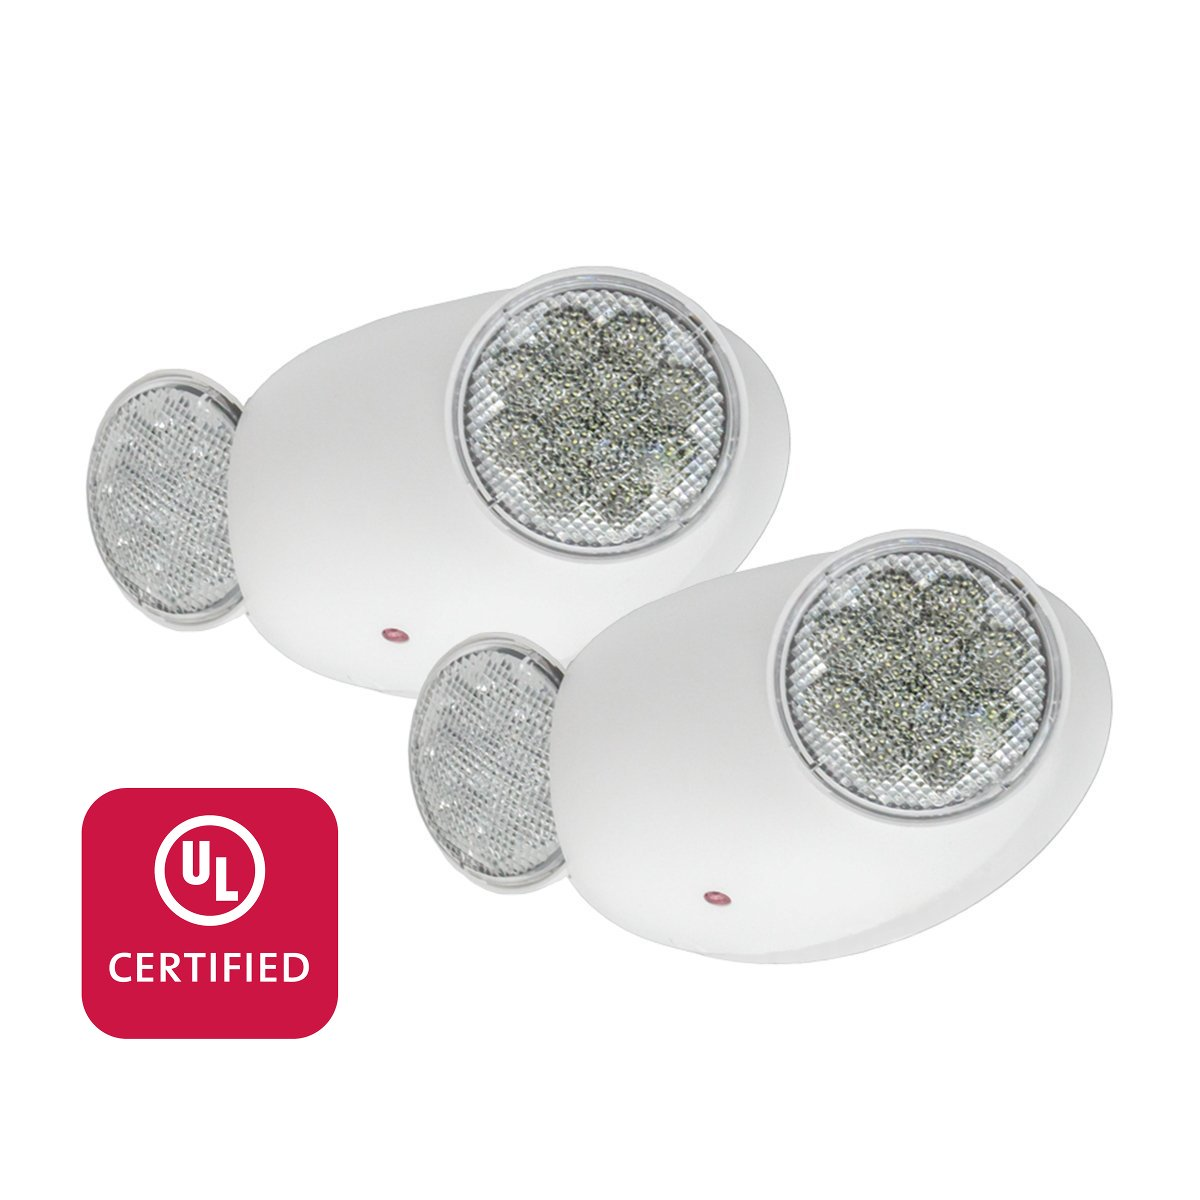 LFI Lights - 2 Pack - UL Certified - Hardwired LED Emergency Light - Compact - High Output - ELMW2x2